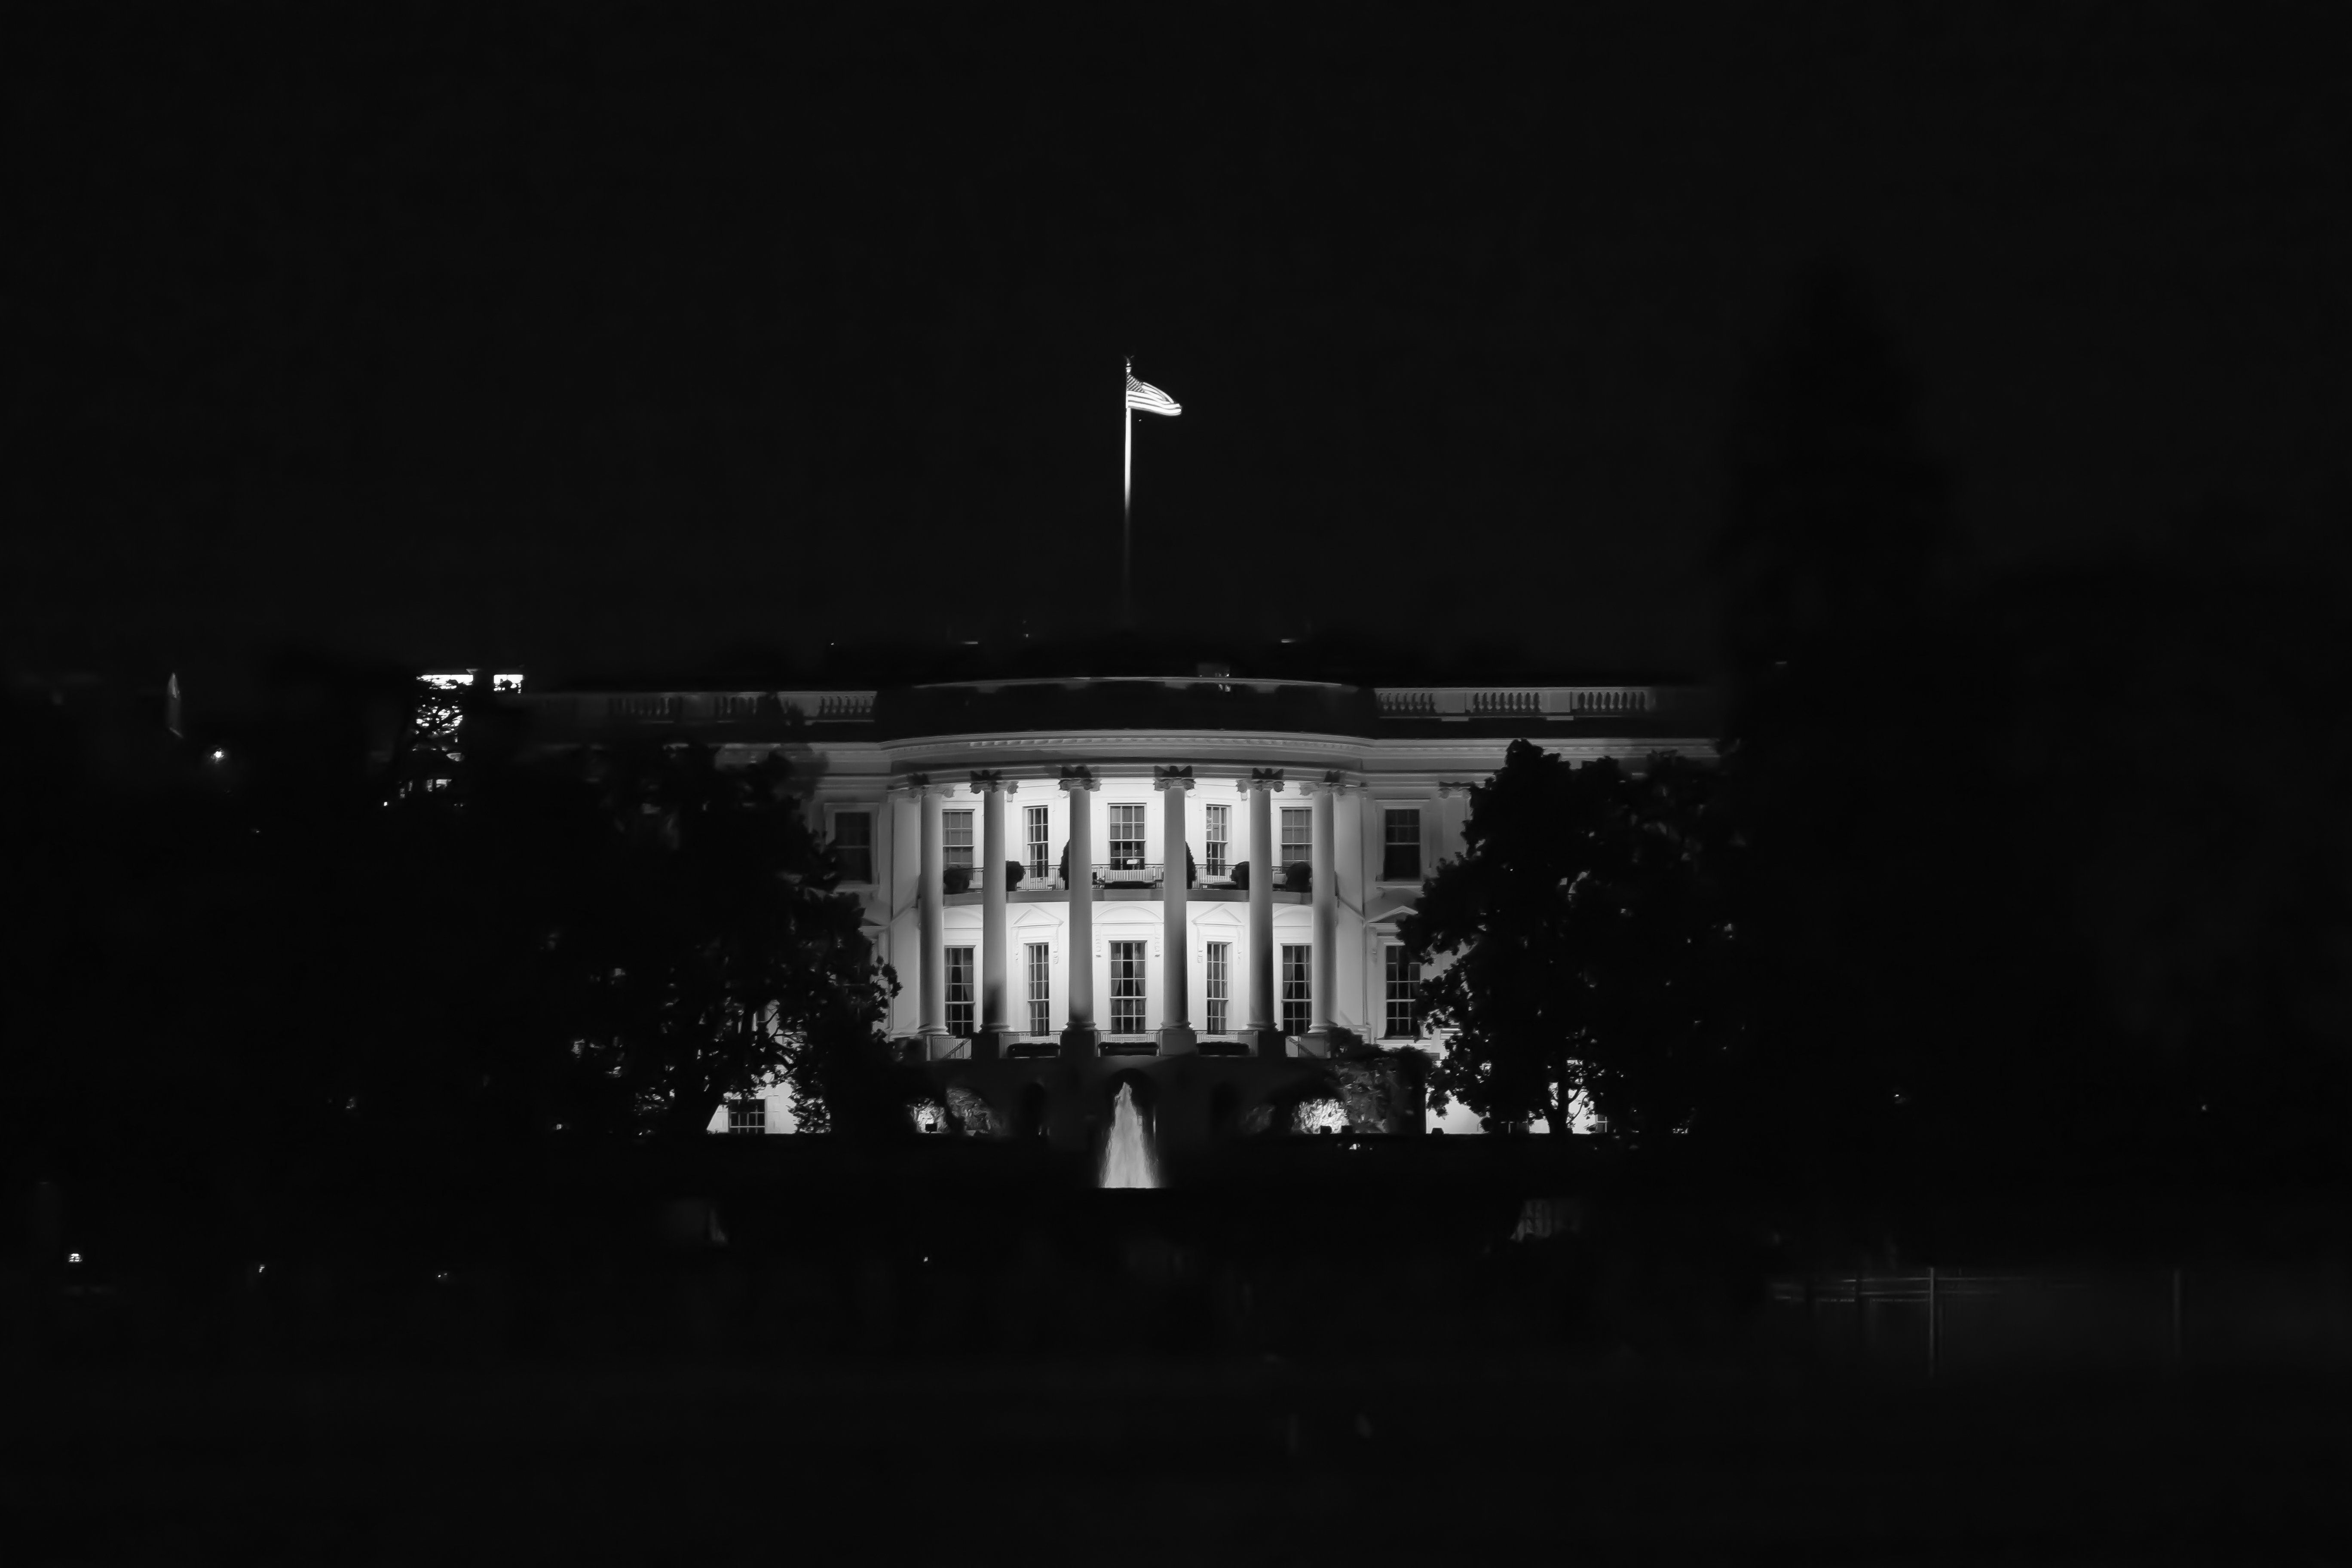 US White House, home of the United States President, at night.